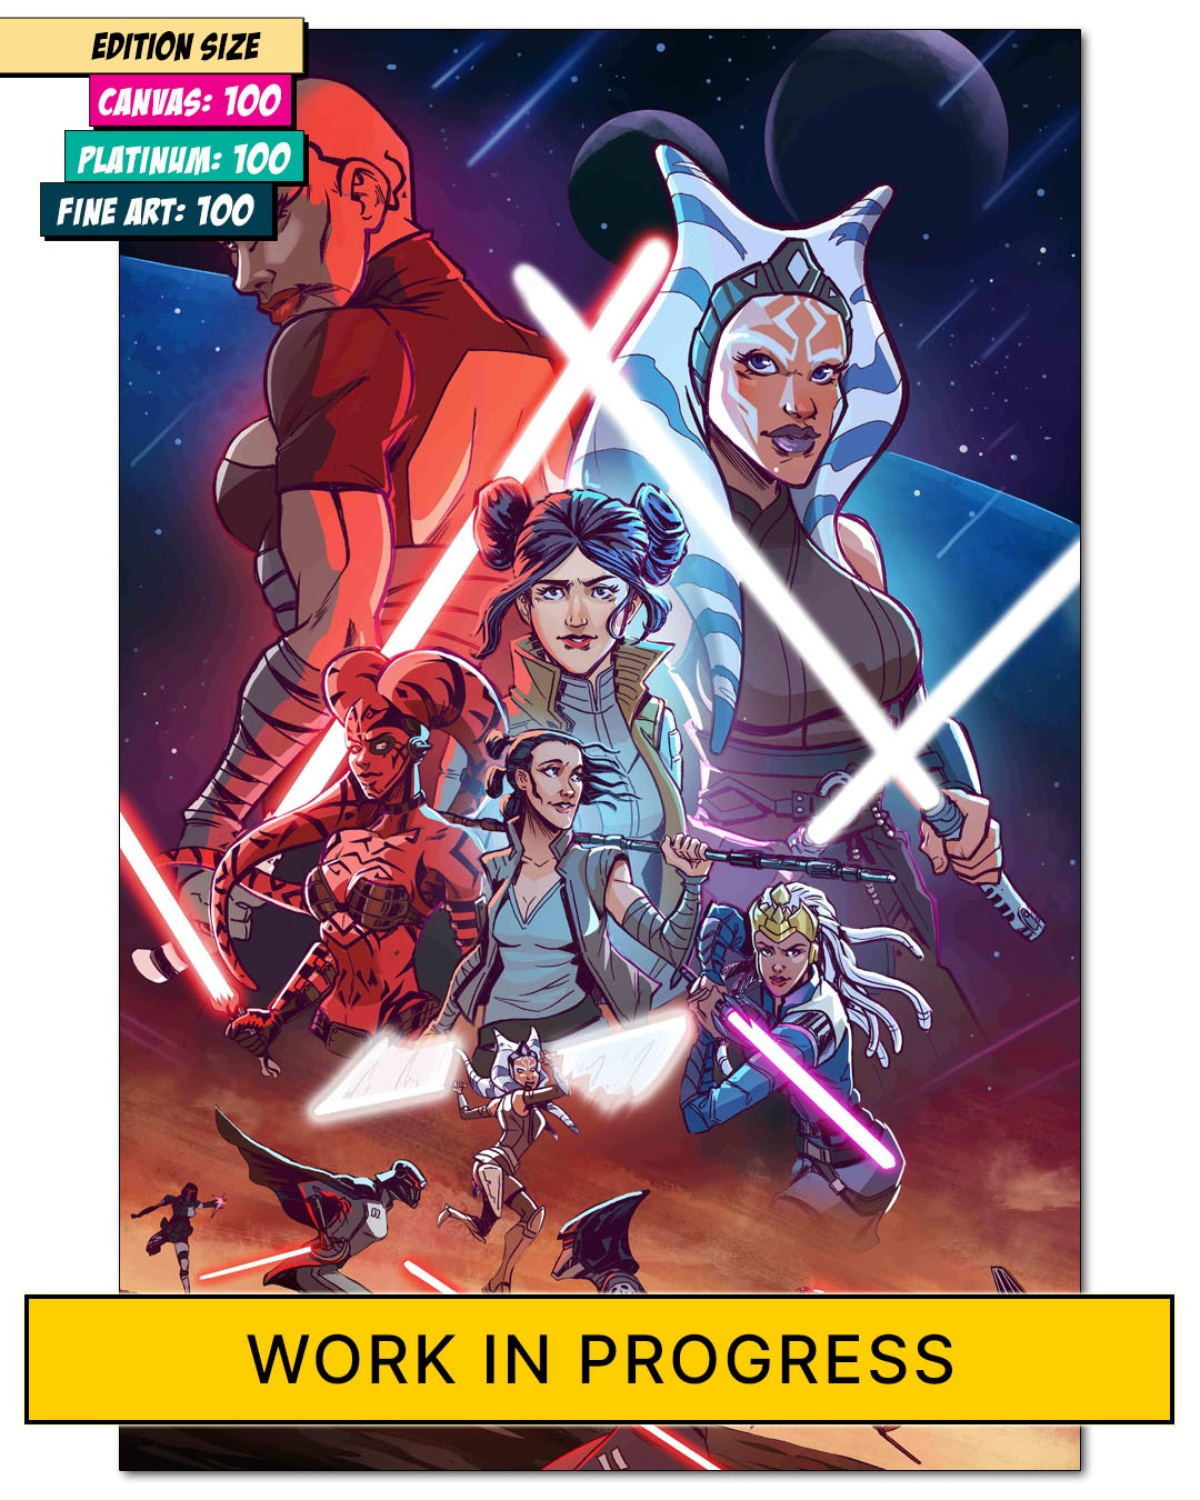 STAR WARS: WOMAN OF THE FORCE